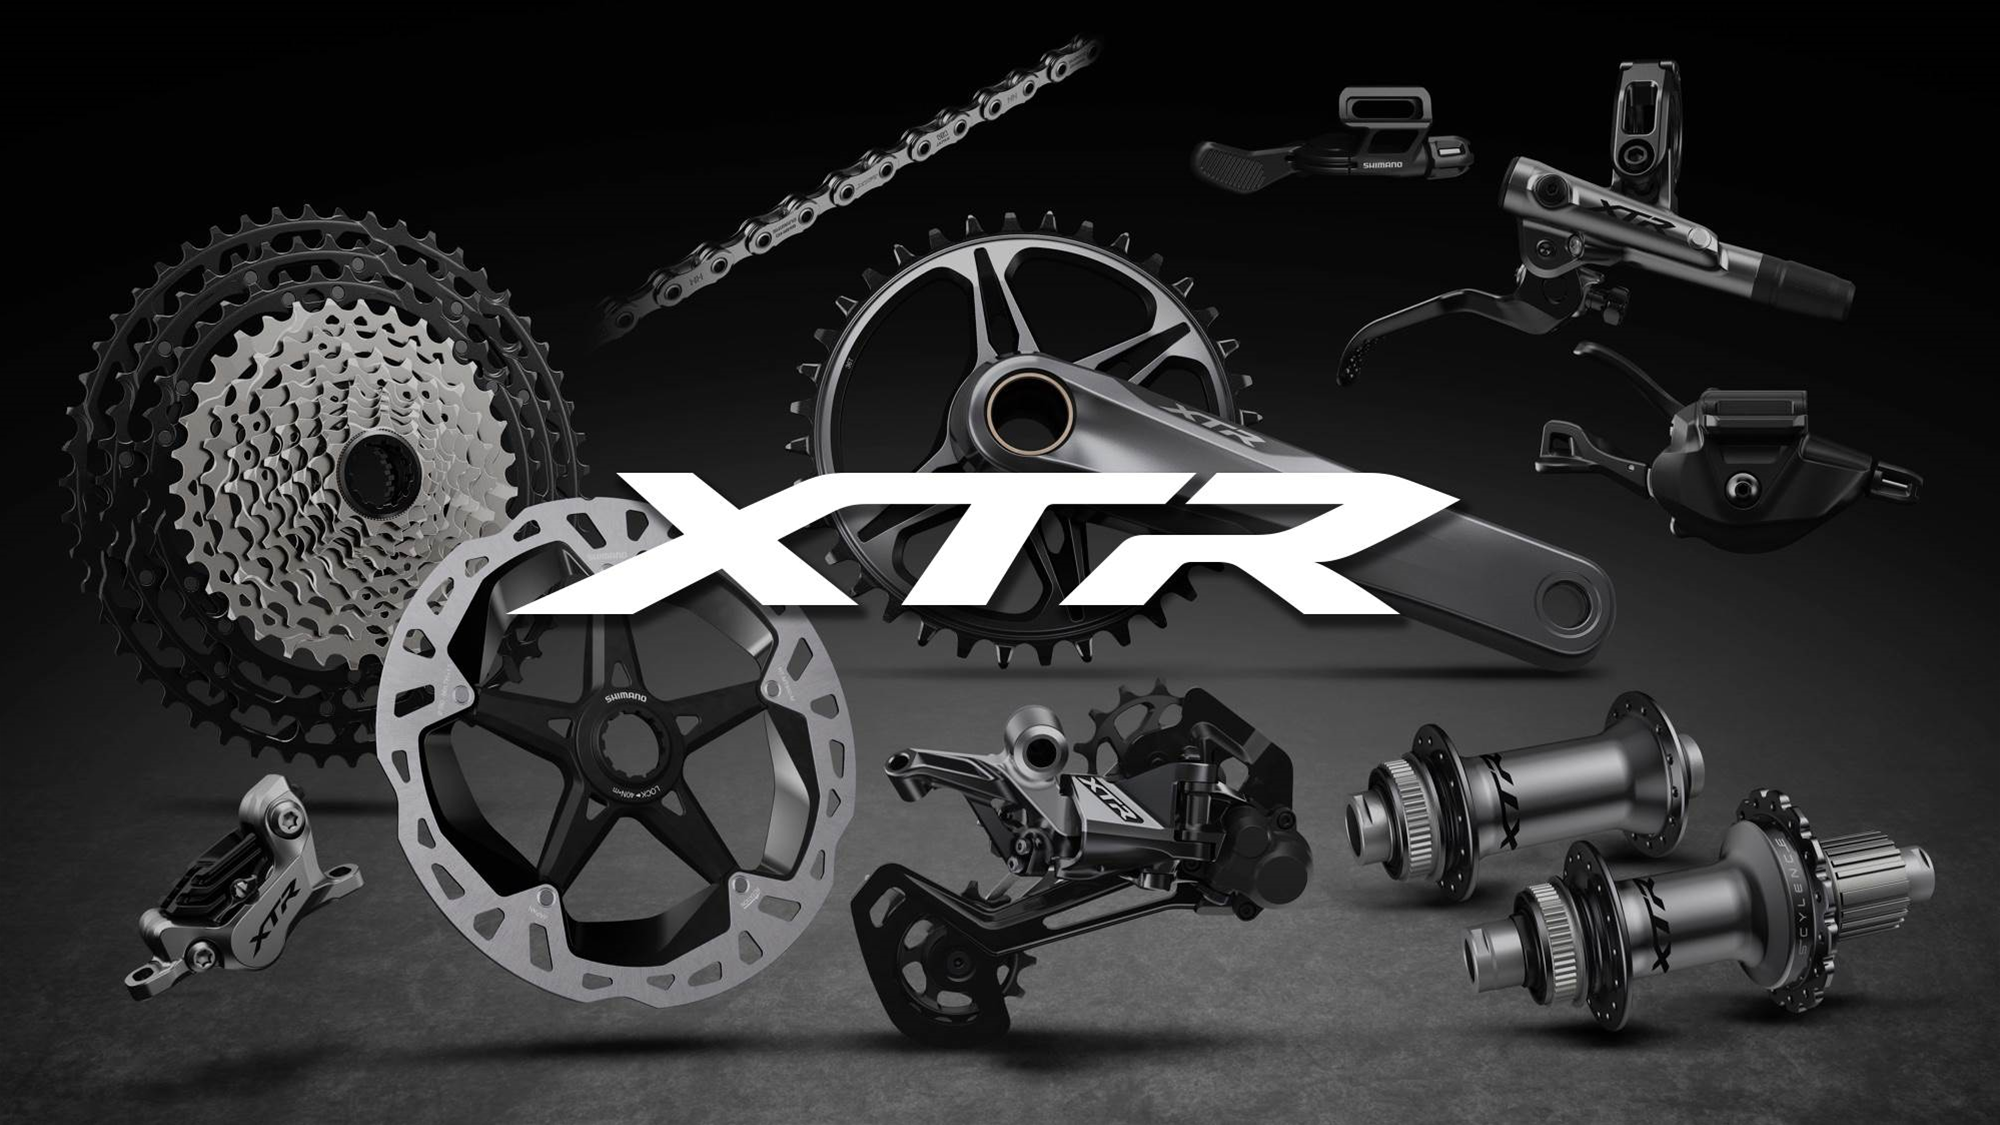 Shimano lift the veil on XTR M9100